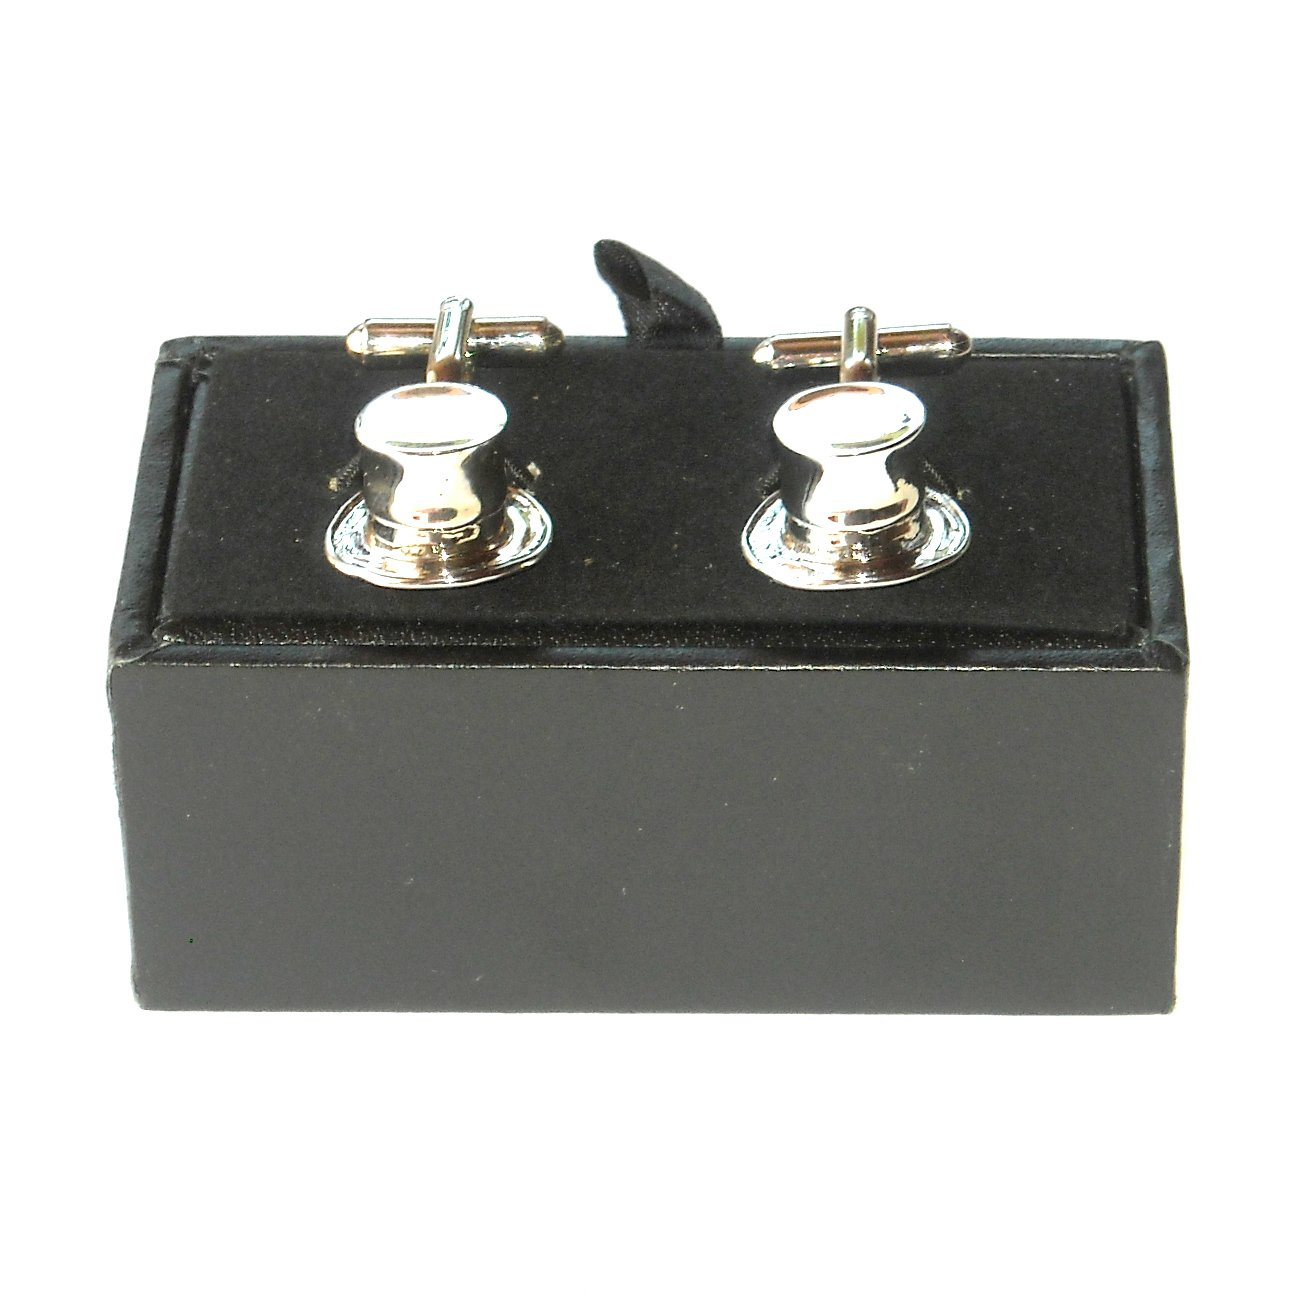 Gentlemens High Hat Silver Color 3D Cufflinks Boxed